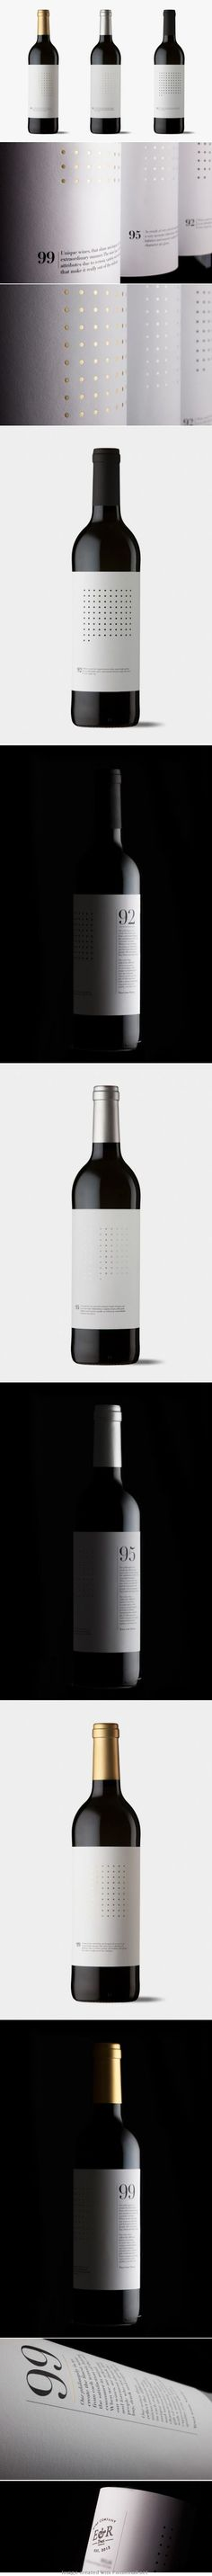 Dotted Grid Wines #taninotanino #vinosmaximum